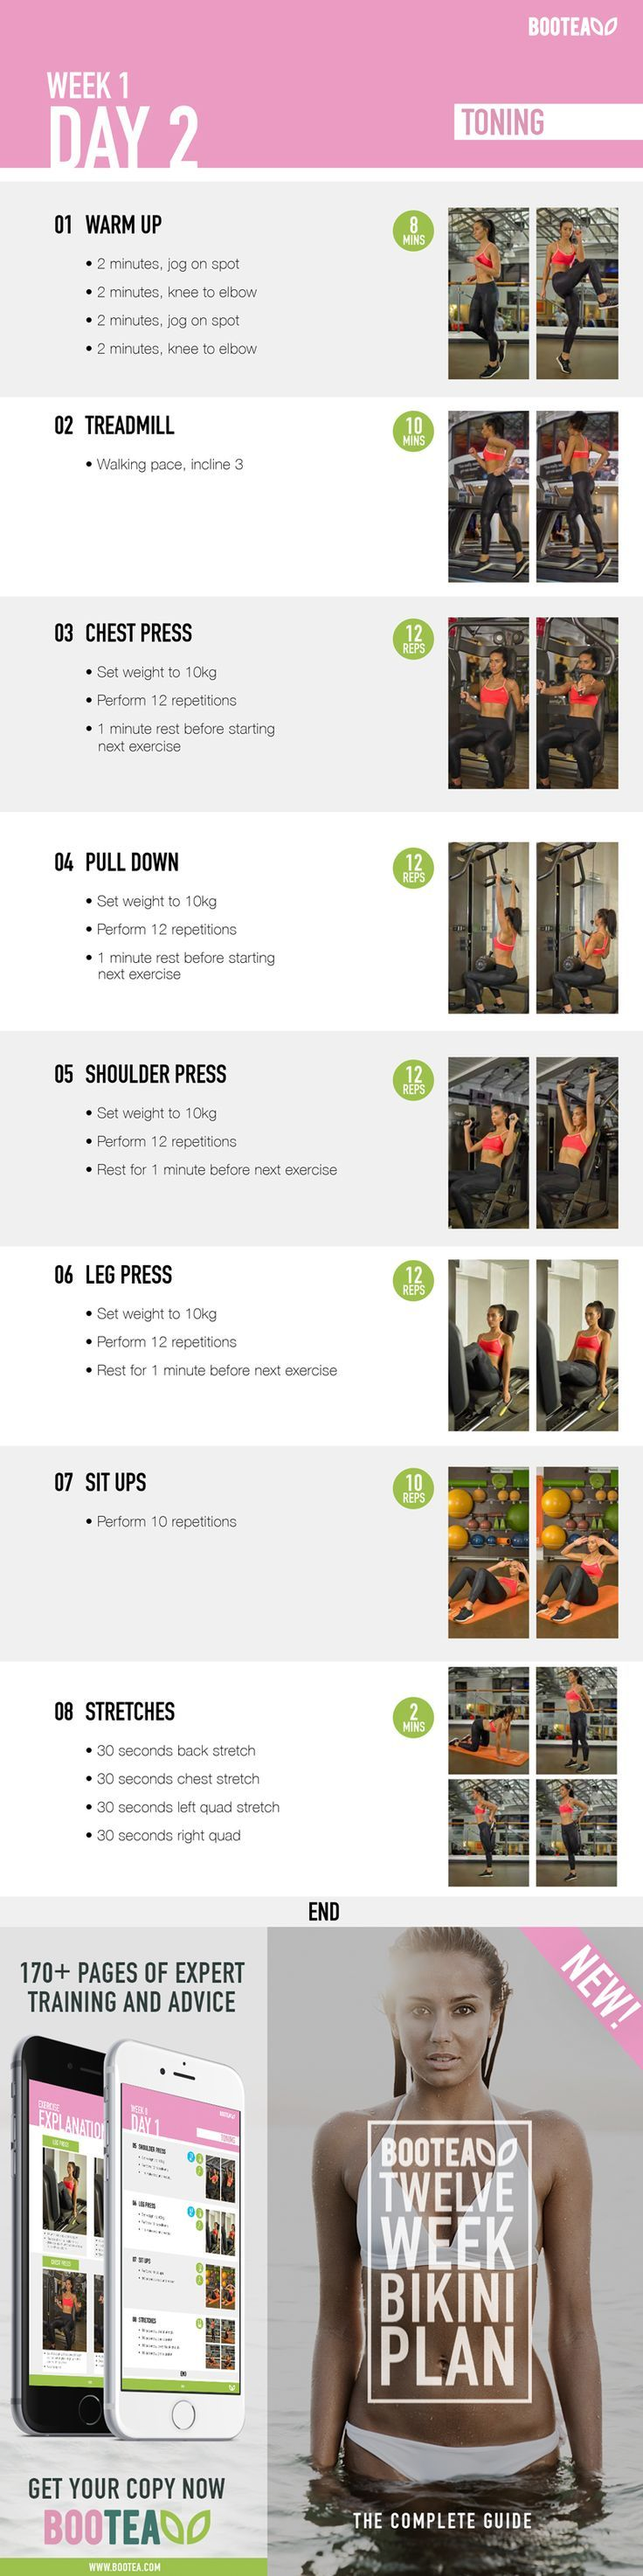 A sample workout from our 12 Week Bikini Fitness Plan, taking you step by step through a gym based transformation. The workouts gradually increase in intensity, and the flexible training time table allows you to fit your exercising around your schedule. O